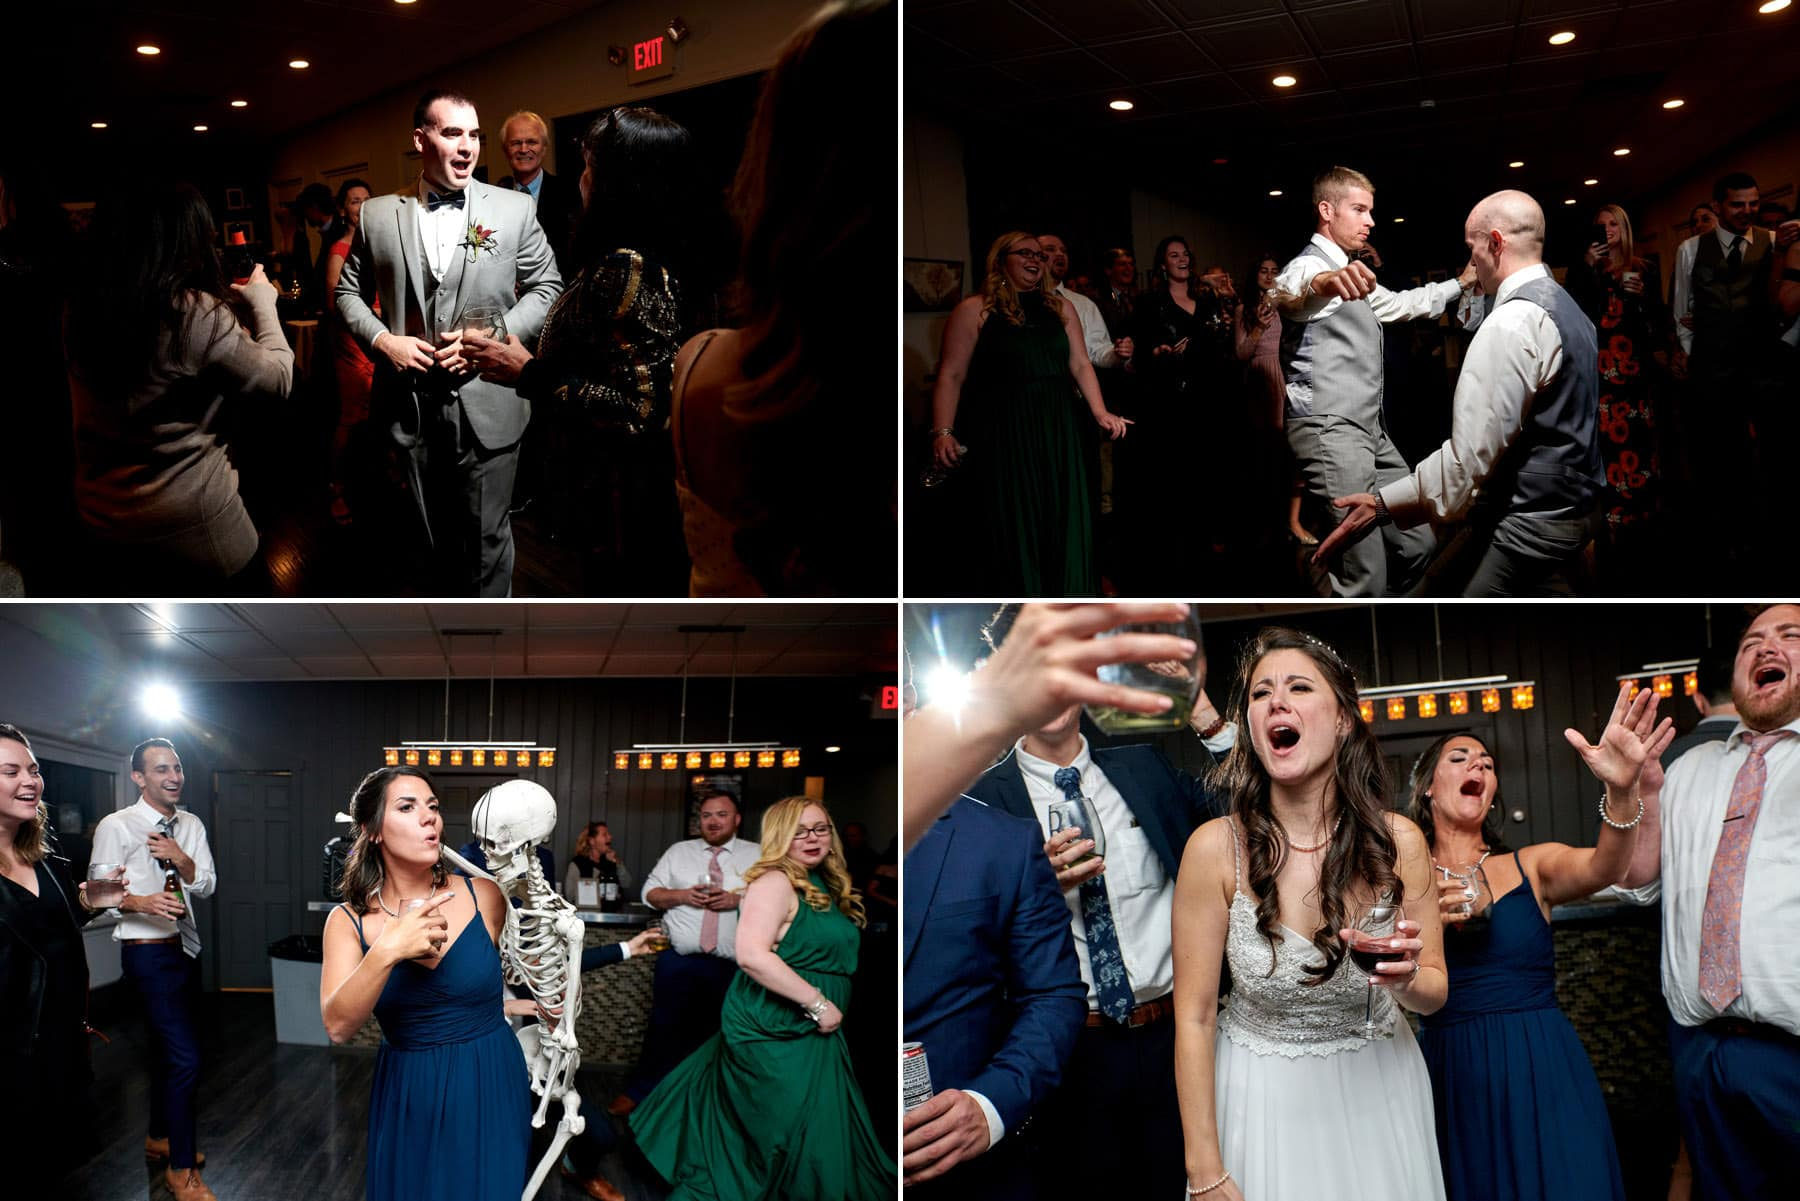 old york cellars wedding reception photos